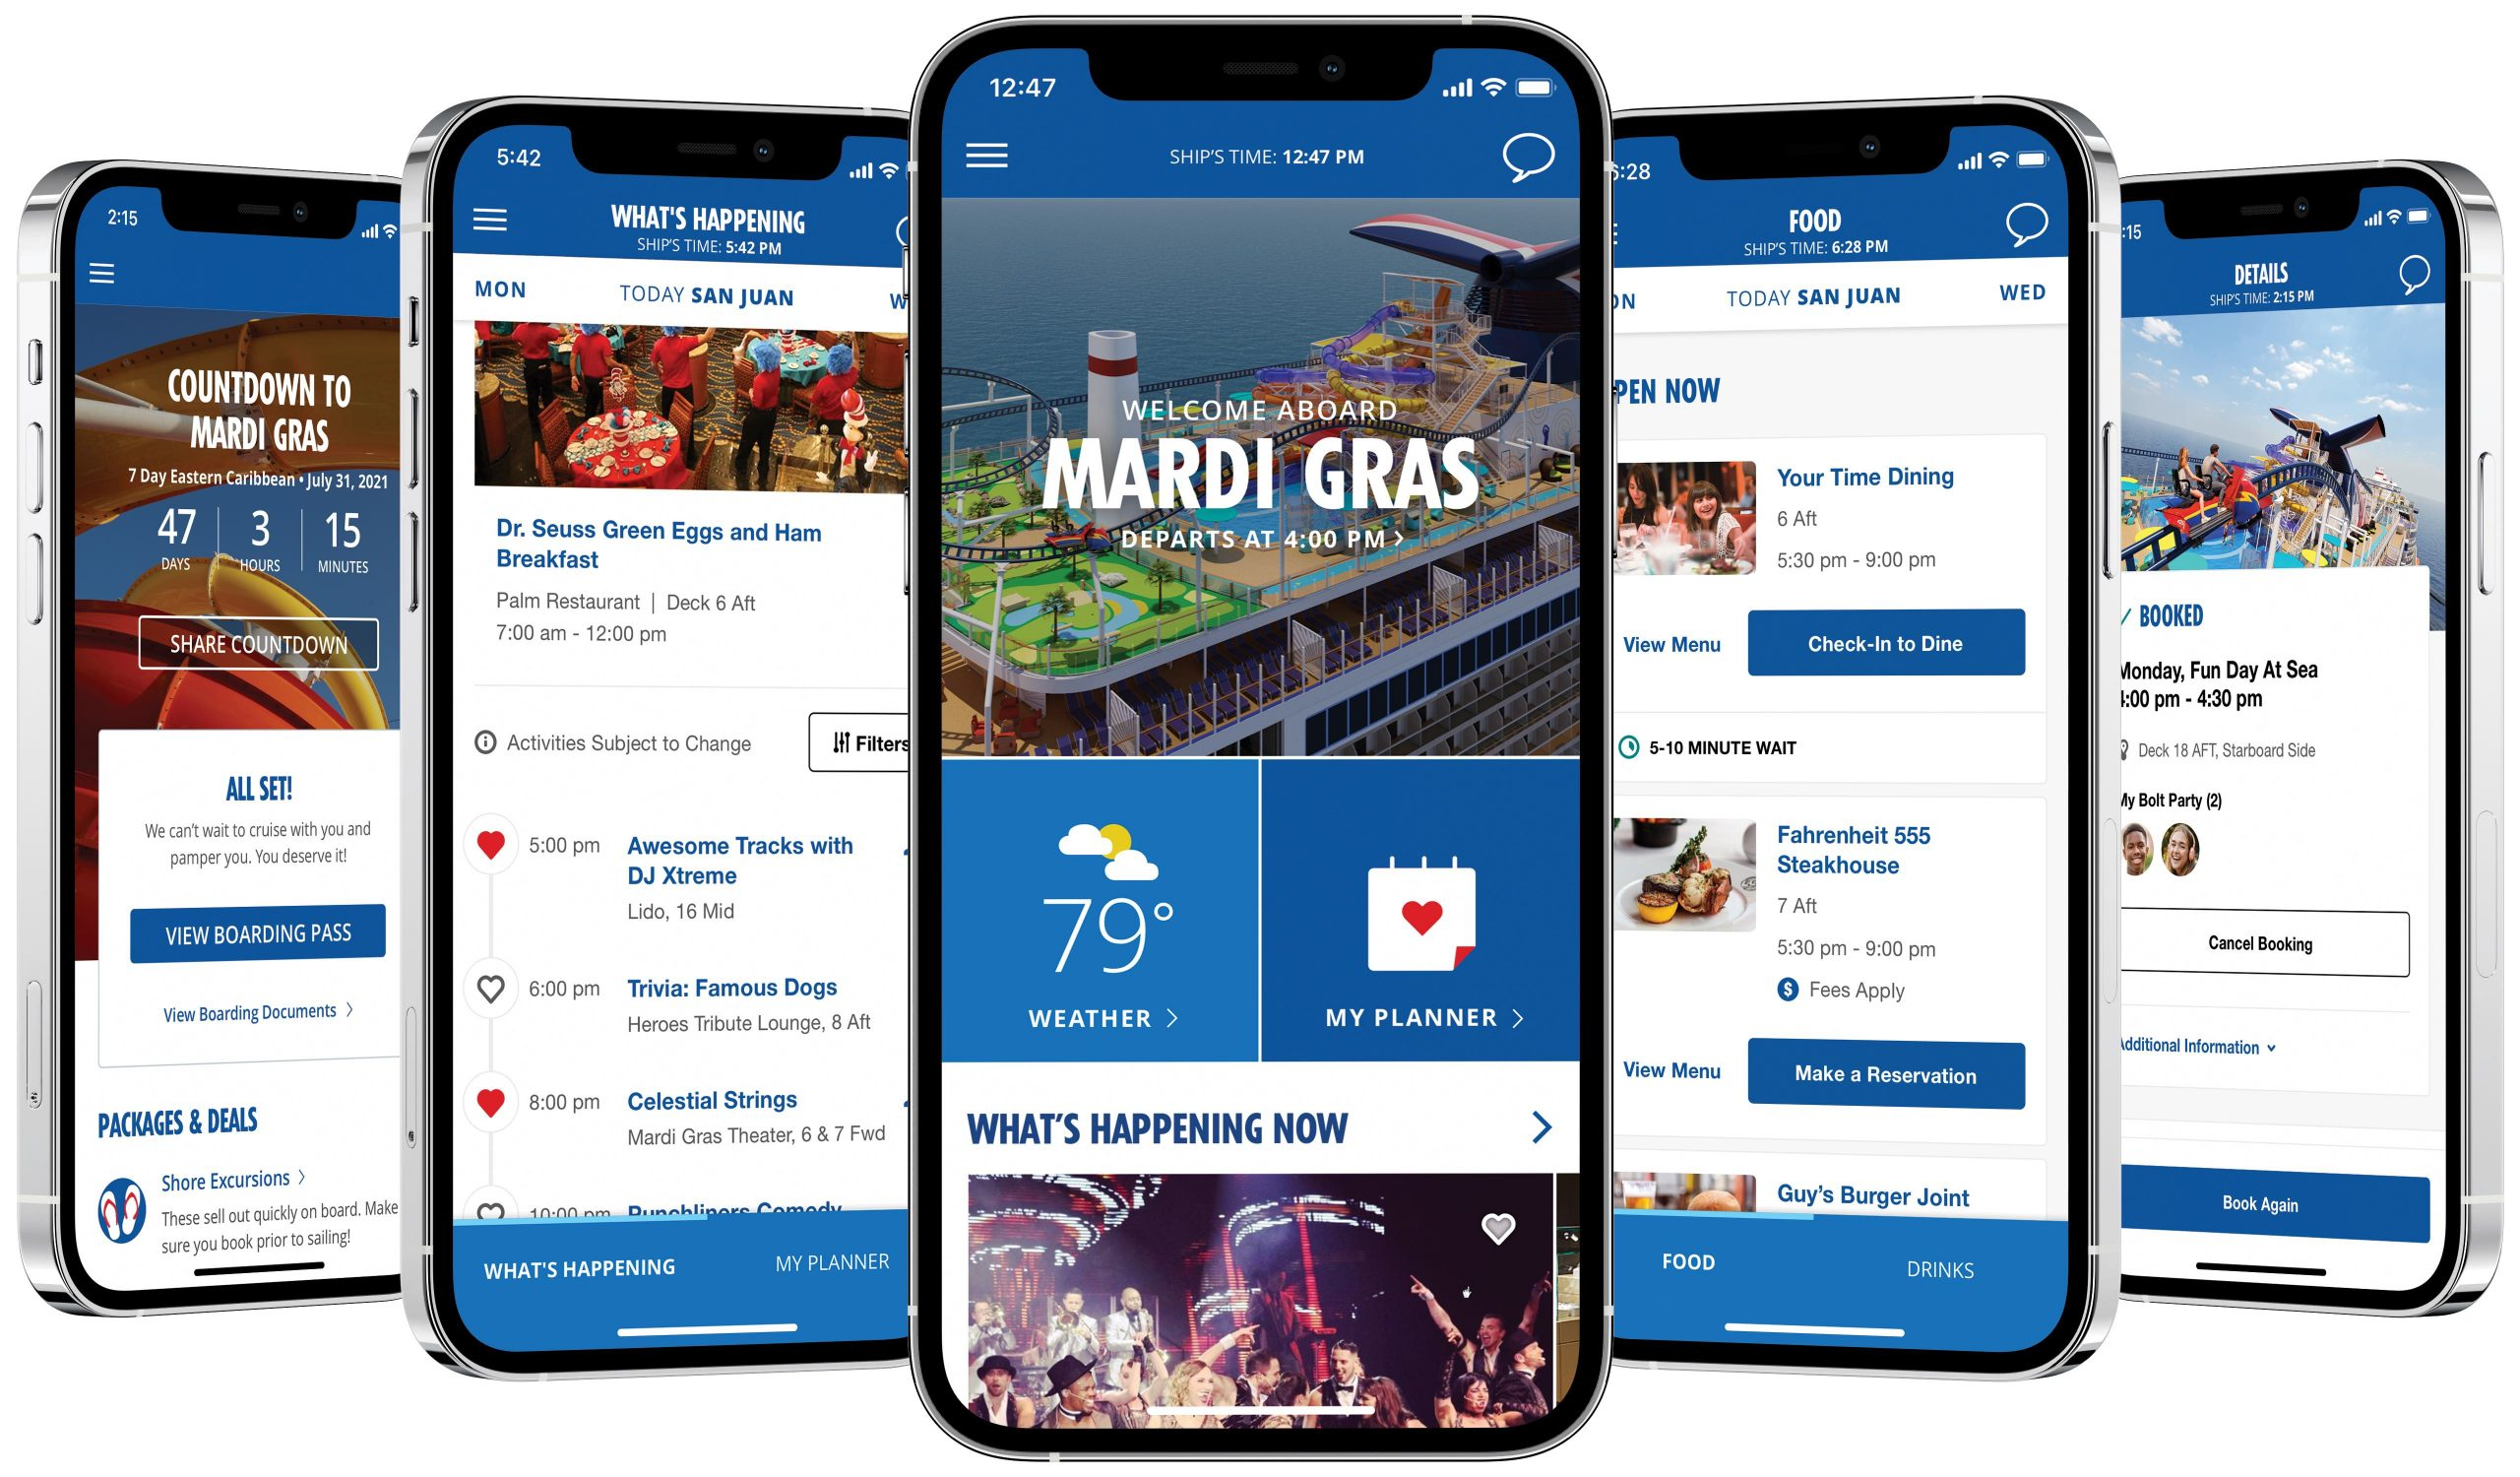 Carnival Cruise Line Expands HUB App to Include Additional Food and Beverage Functionality, Updated Health and Safety Information and More